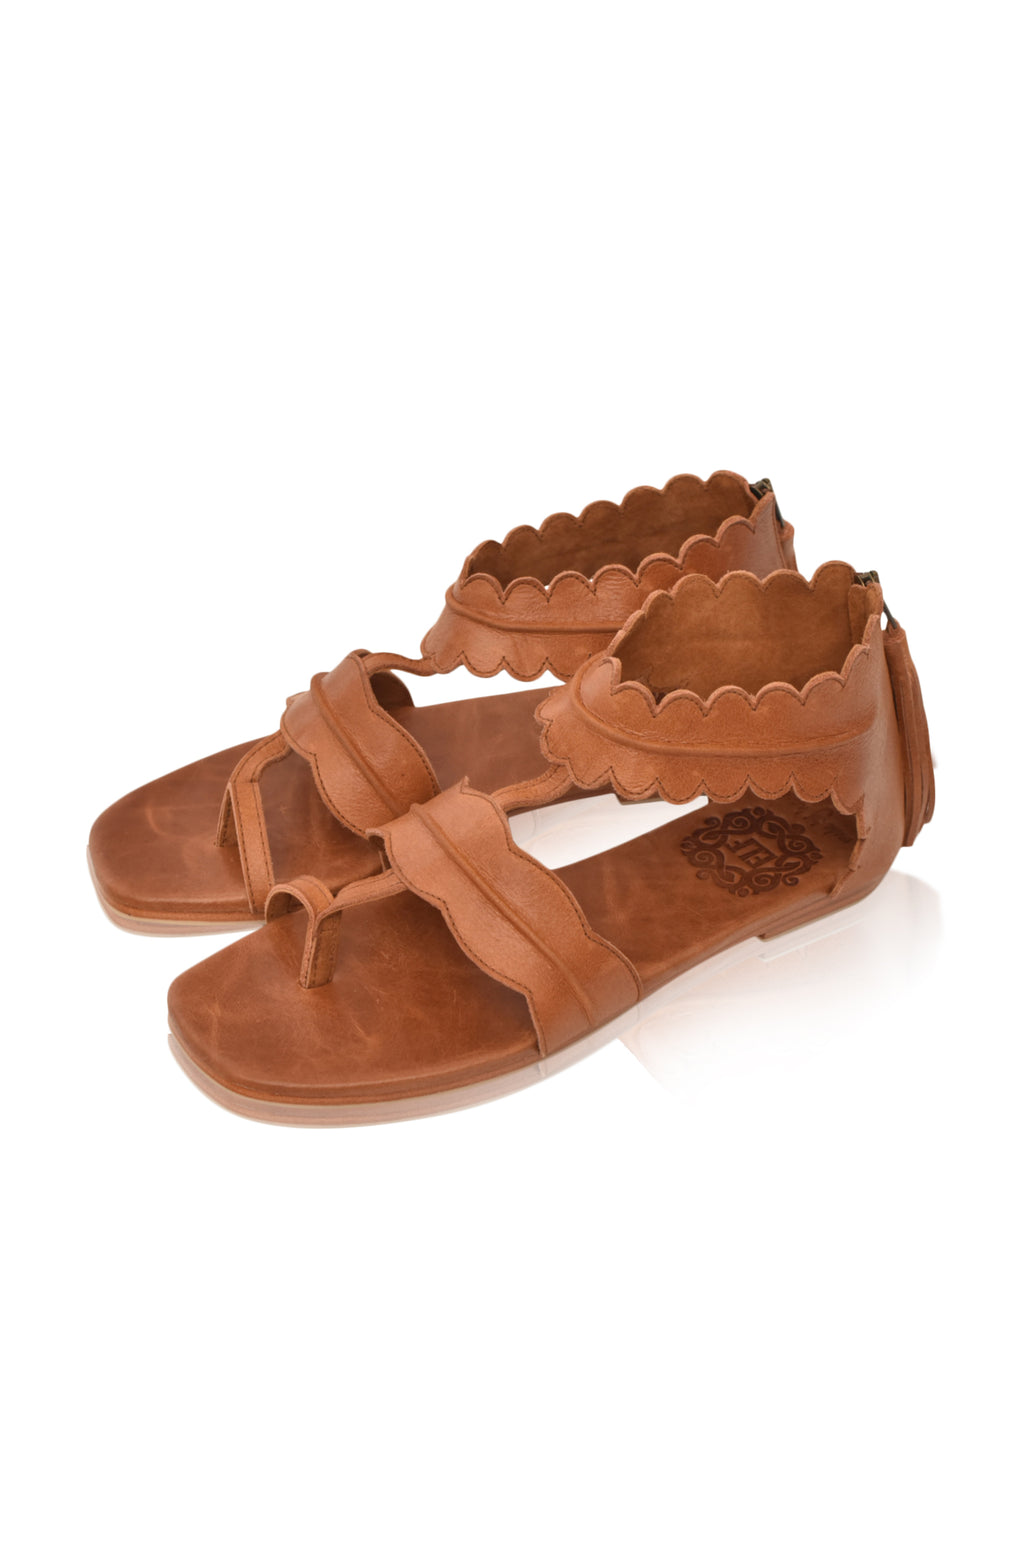 Oceania Thong Leather Sandals (Sz. 7)